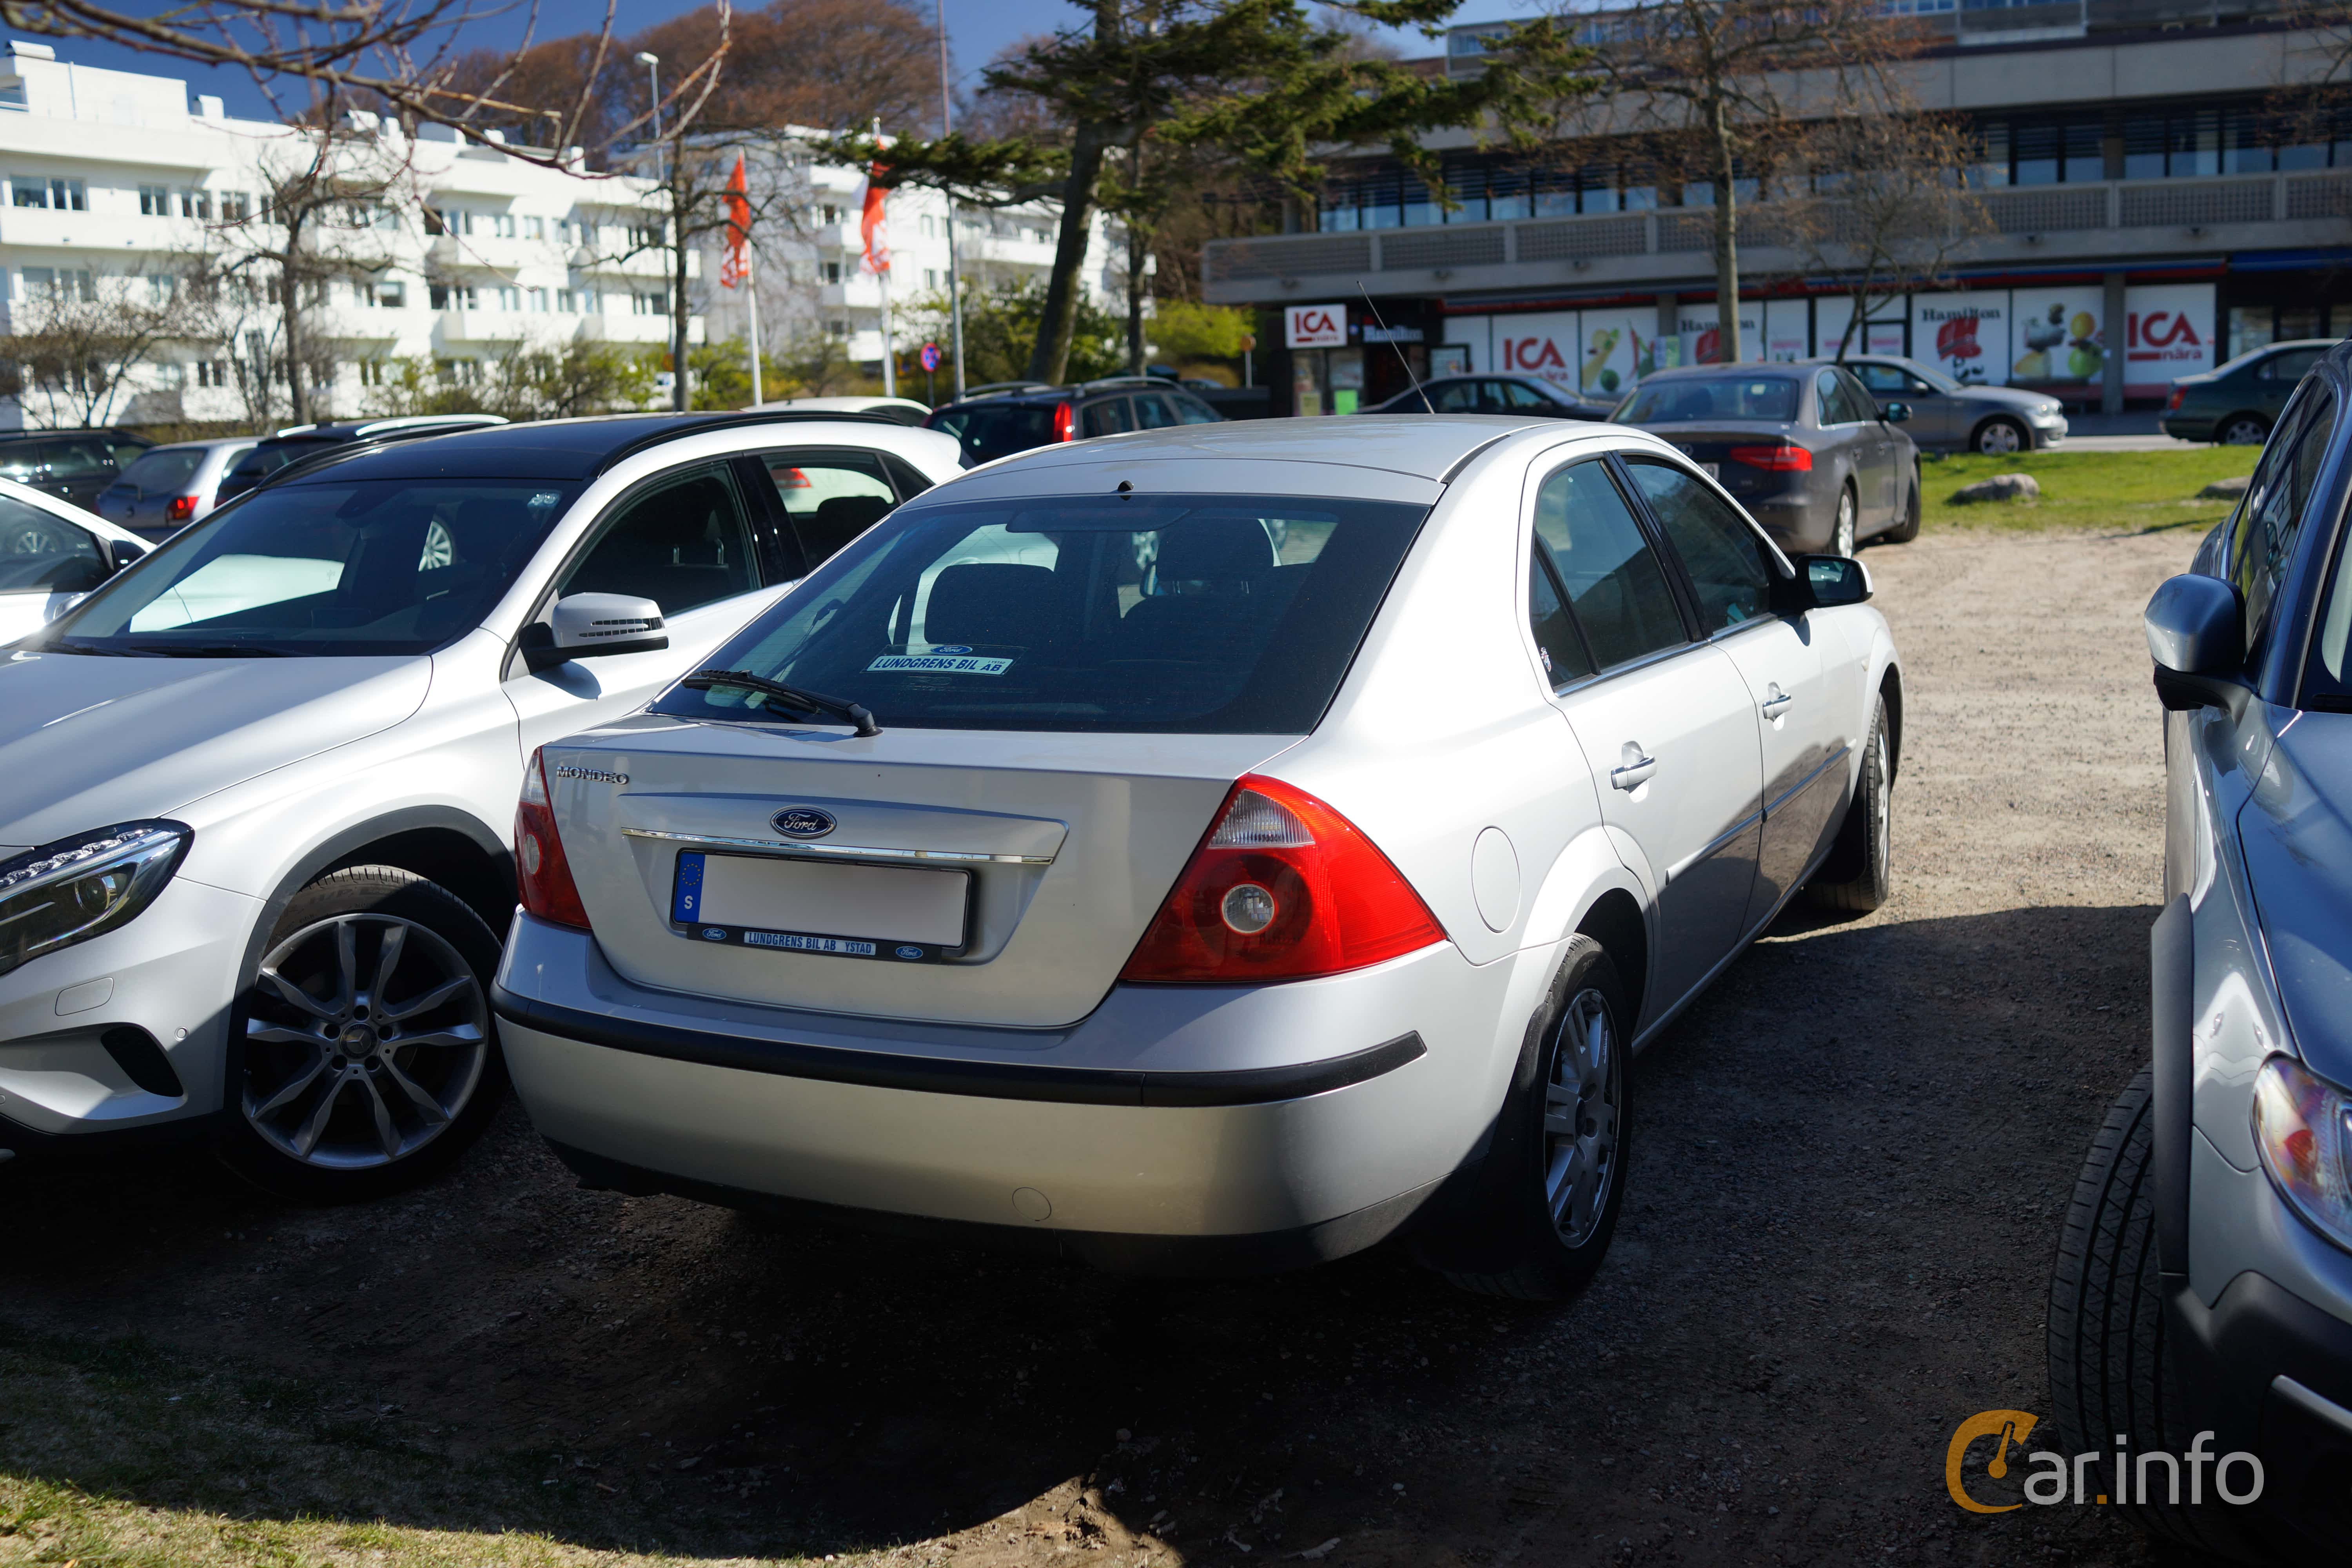 Ford Mondeo Hatchback 2 0 Manual 145hp 2004